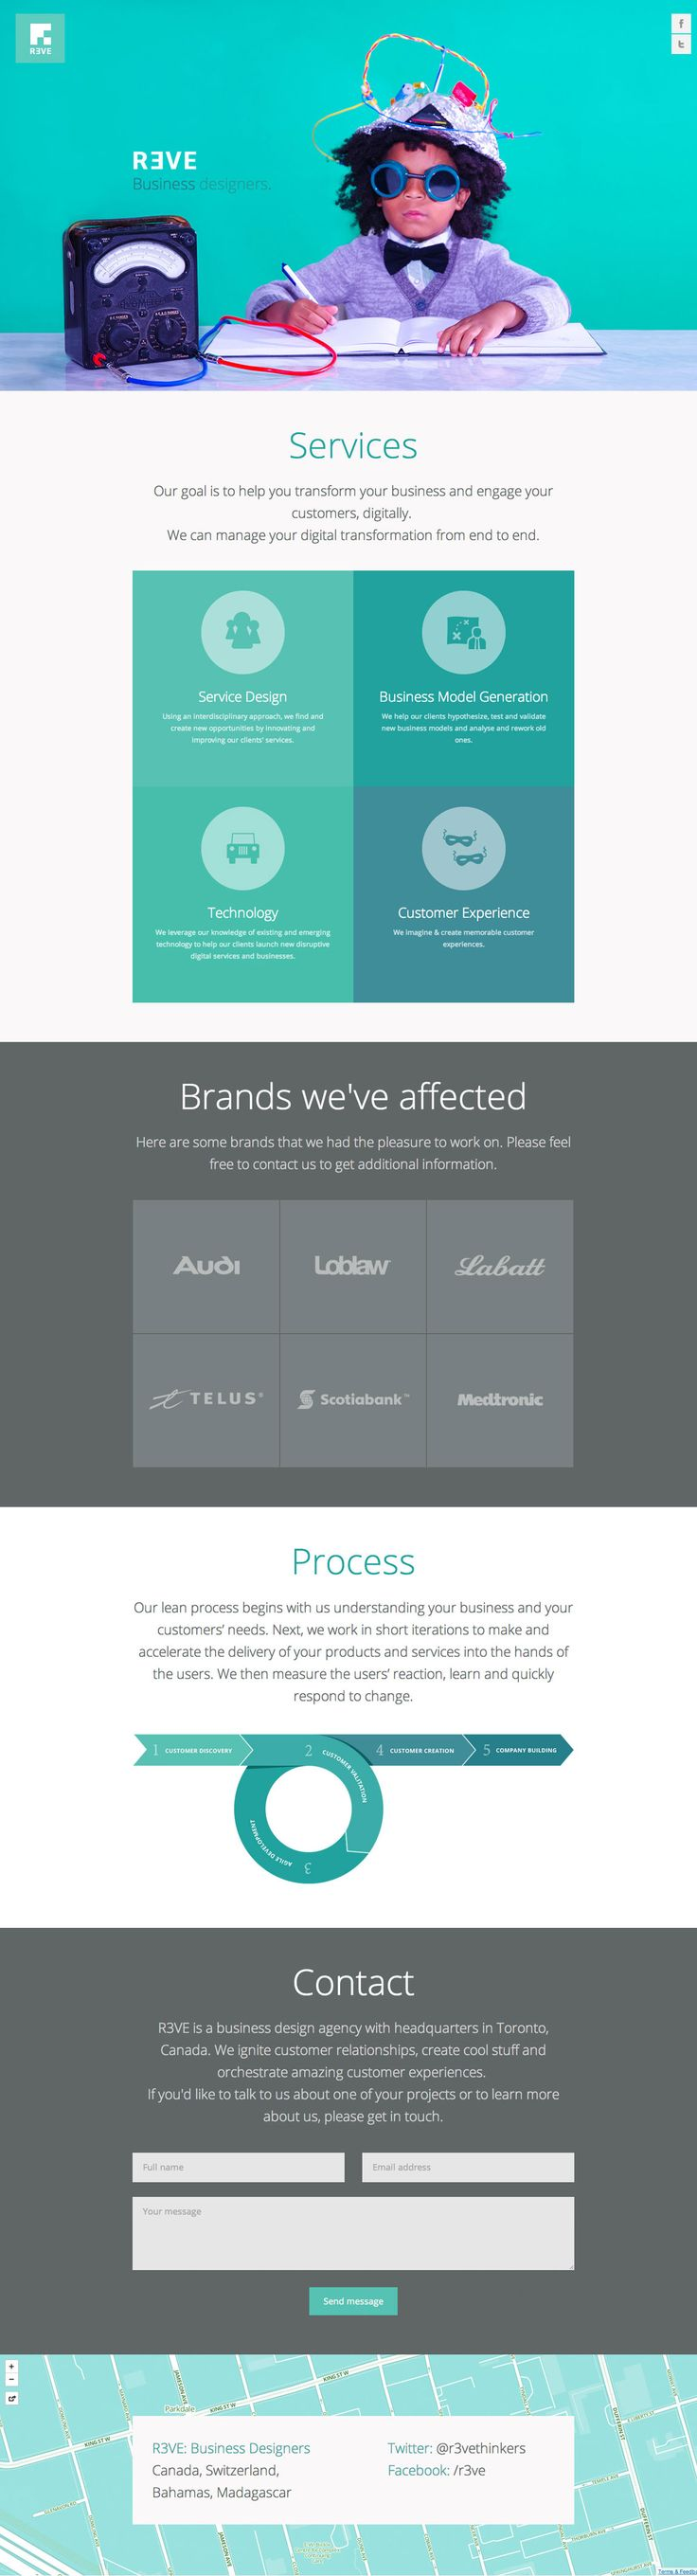 What an awesome intro image to this responsive flat designed one pager for Rêve digital agency.